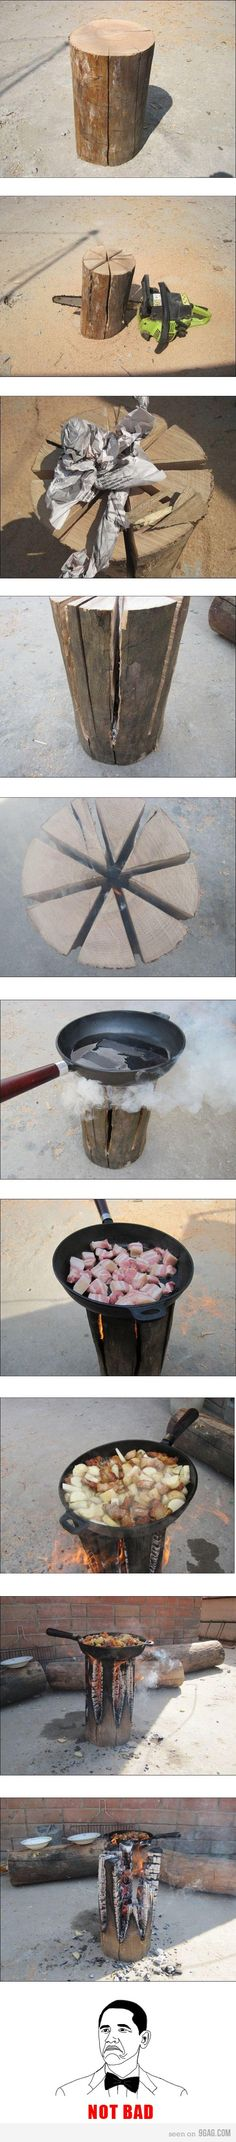 """Not for back packers or anything, but this looks like a fun camping idea or """"there-isn't-enough-room-on-the-bar-b-q"""" fix. Just takes a little prep and a chain saw:-) (Proubly not, but it is a creative idea! Camping Survival, Outdoor Survival, Emergency Preparedness, Survival Gear, Survival Skills, Survival Hacks, Survival Stuff, Camping Stove, Go Camping"""